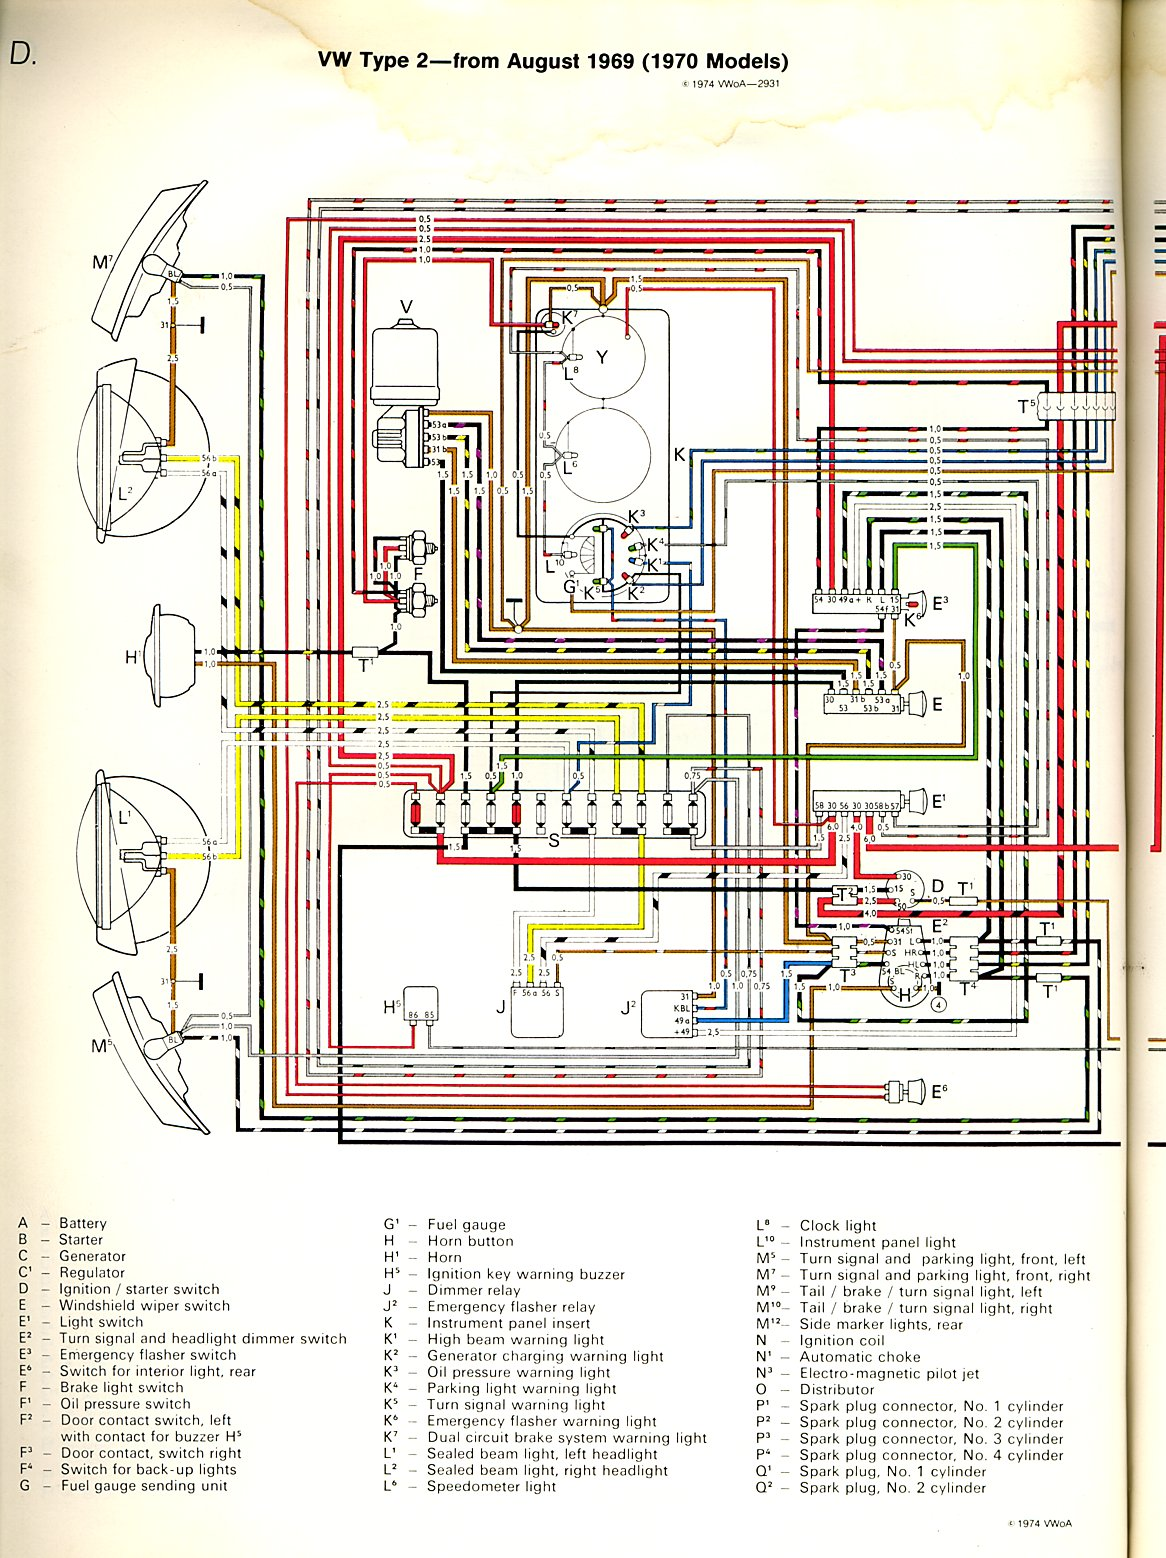 baybus_70a 1970 vw bus wiring diagram 1970 wiring diagrams collection  at fashall.co